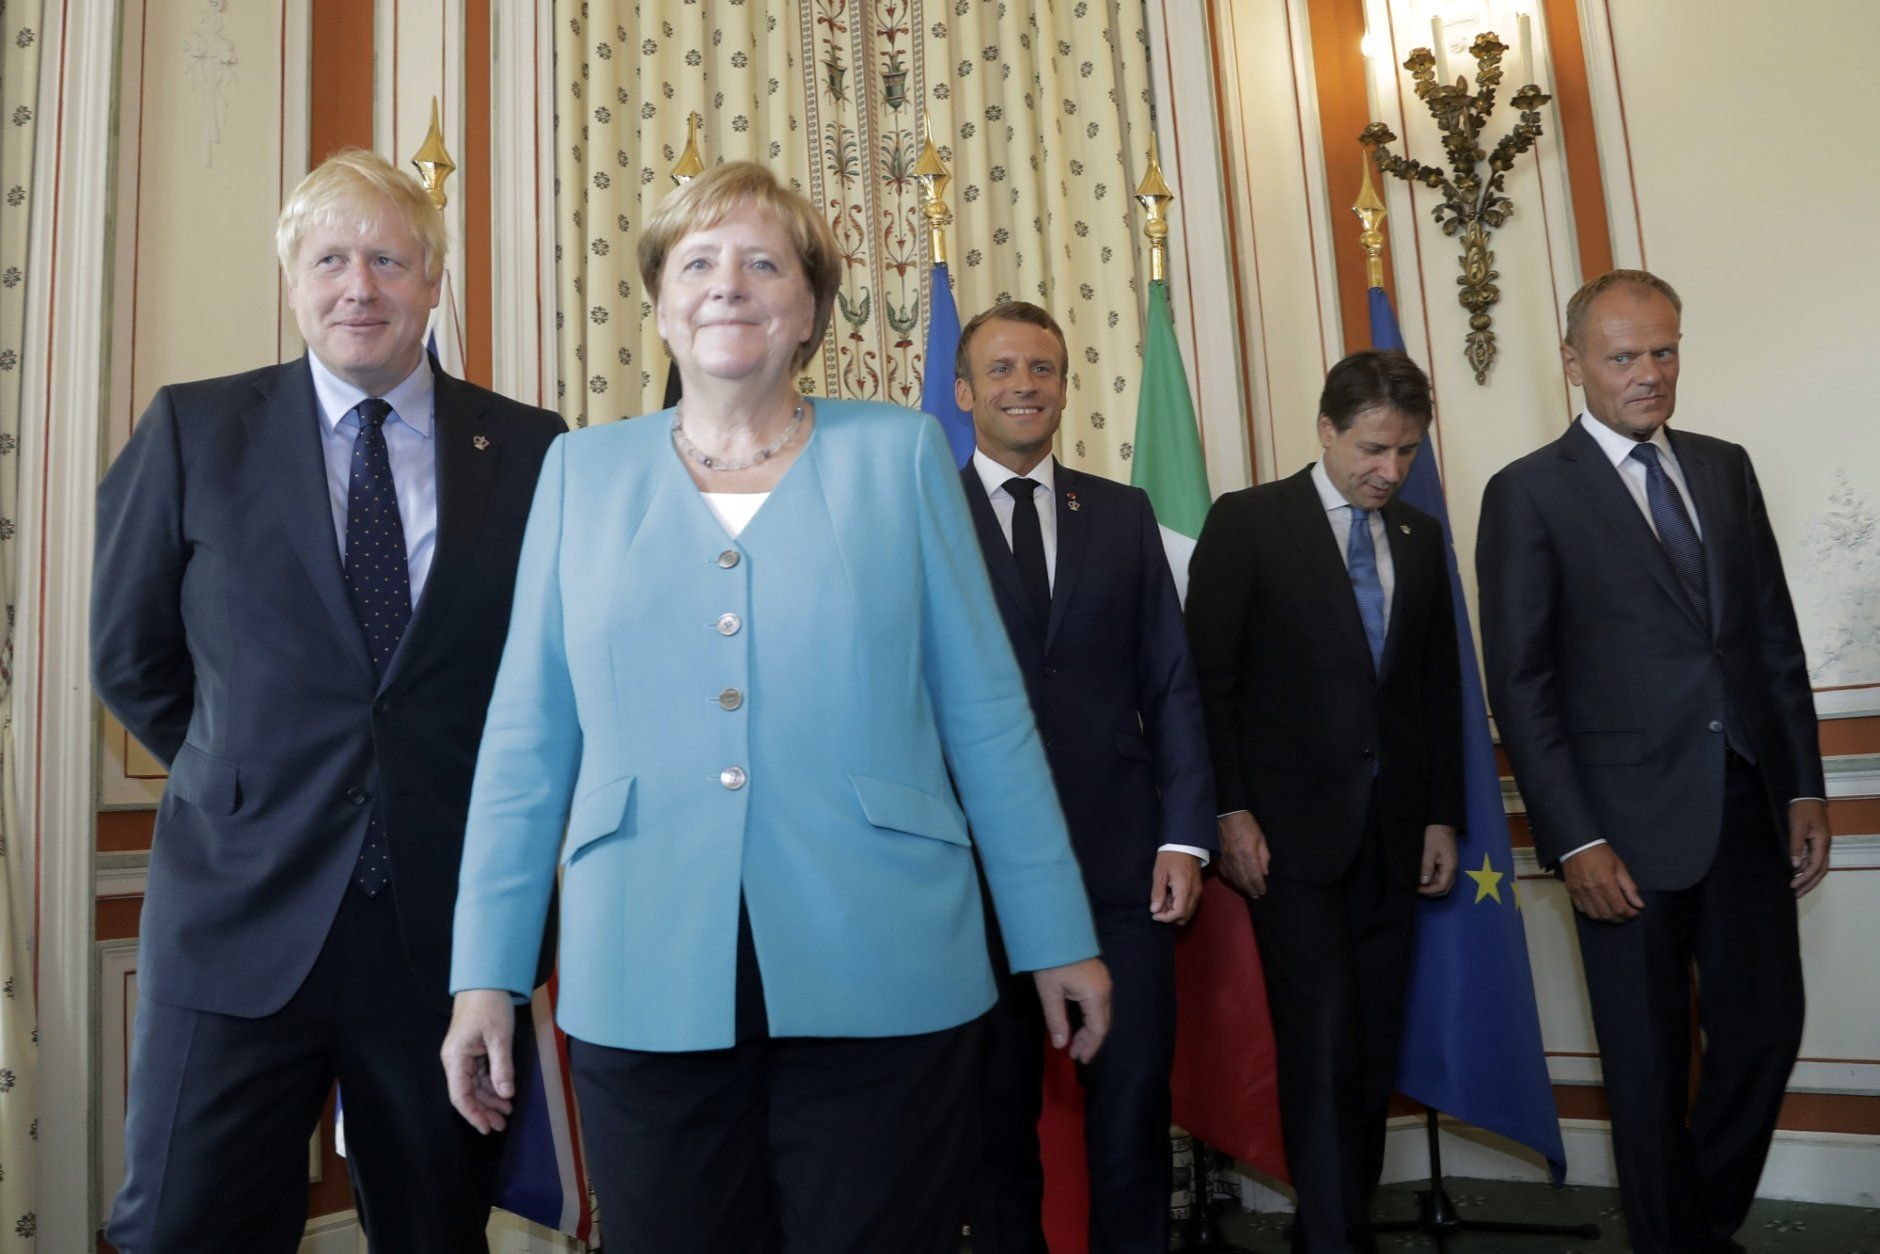 From the left, Britain's Prime Minister Boris Johnson, German Chancellor Angela Merkel, French President Emmanuel Macron, Italian Premier Giuseppe Conte and President of the European Council Donald Tusk pose during a G7 coordination meeting with the Group of Seven European members at the Hotel du Palais in Biarritz, southwestern France, Saturday, Aug.24, 2019. Efforts to salvage consensus among the G-7 rich democracies frayed Saturday in the face of U.S. President Donald Trump's unpredictable America-first approach even before the official start of the summit in southern France. (AP Photo/Markus Schreiber, Pool)